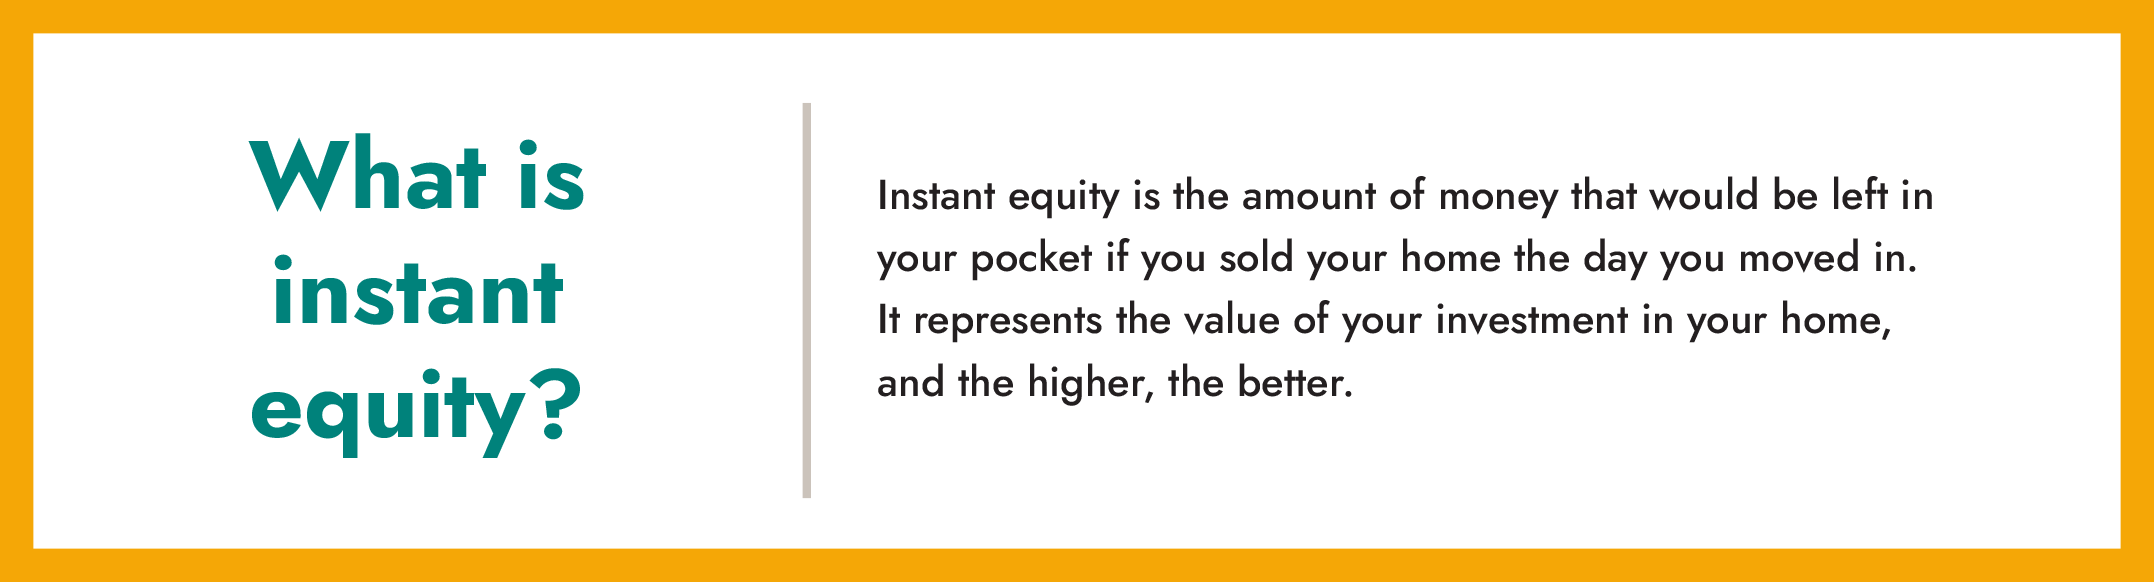 what is instant equity info box